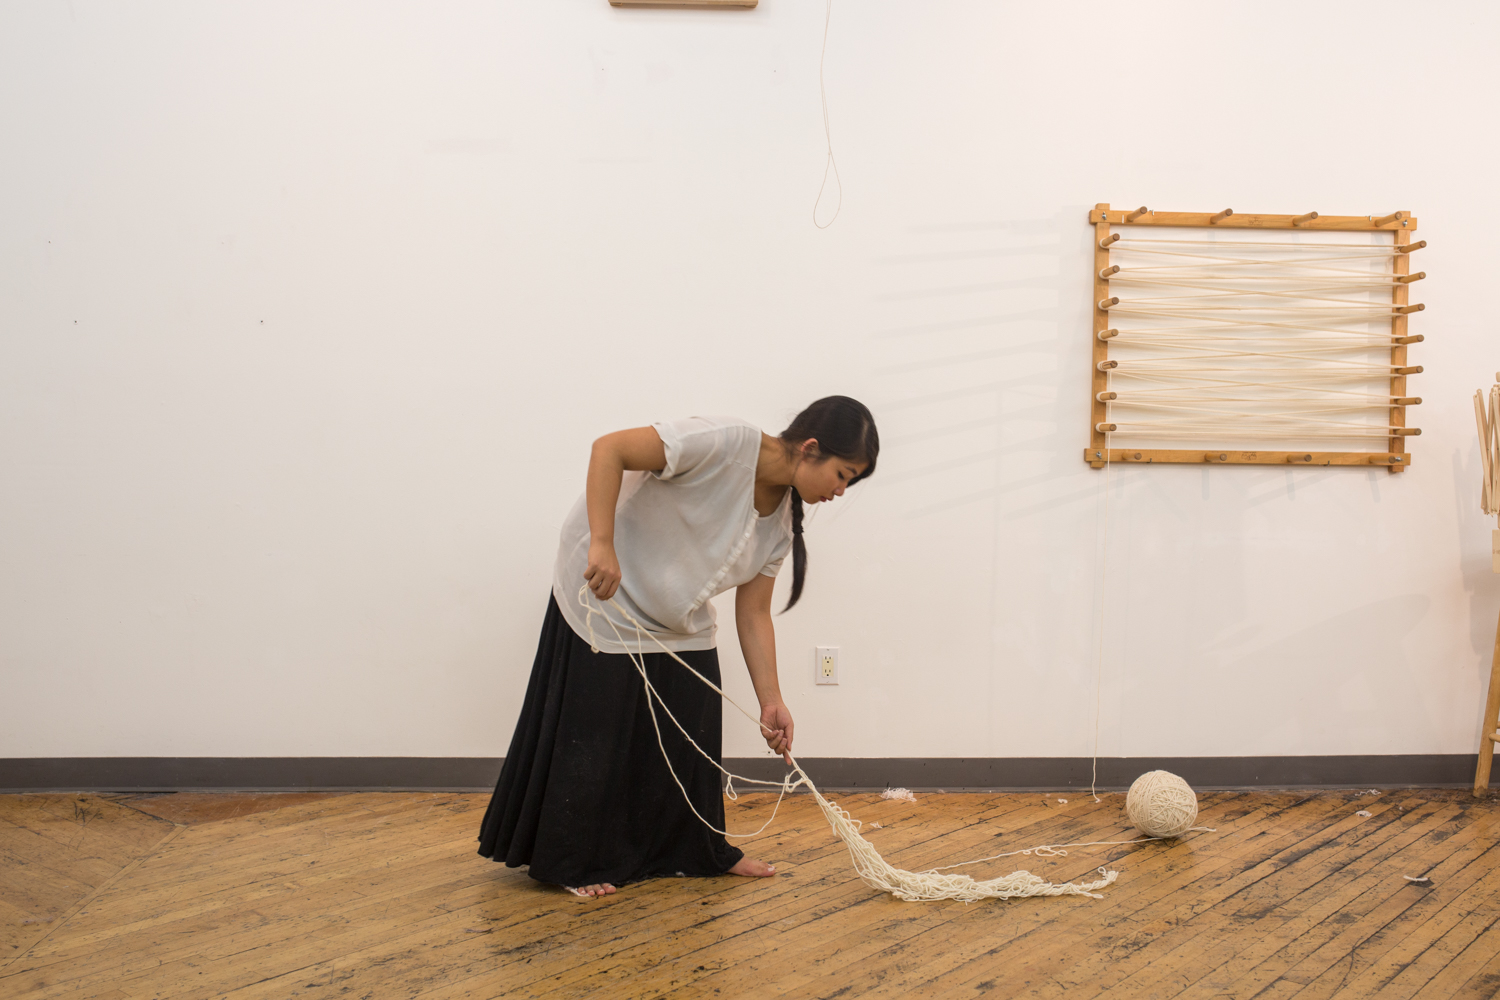 The artist bends down the untangle a knot.